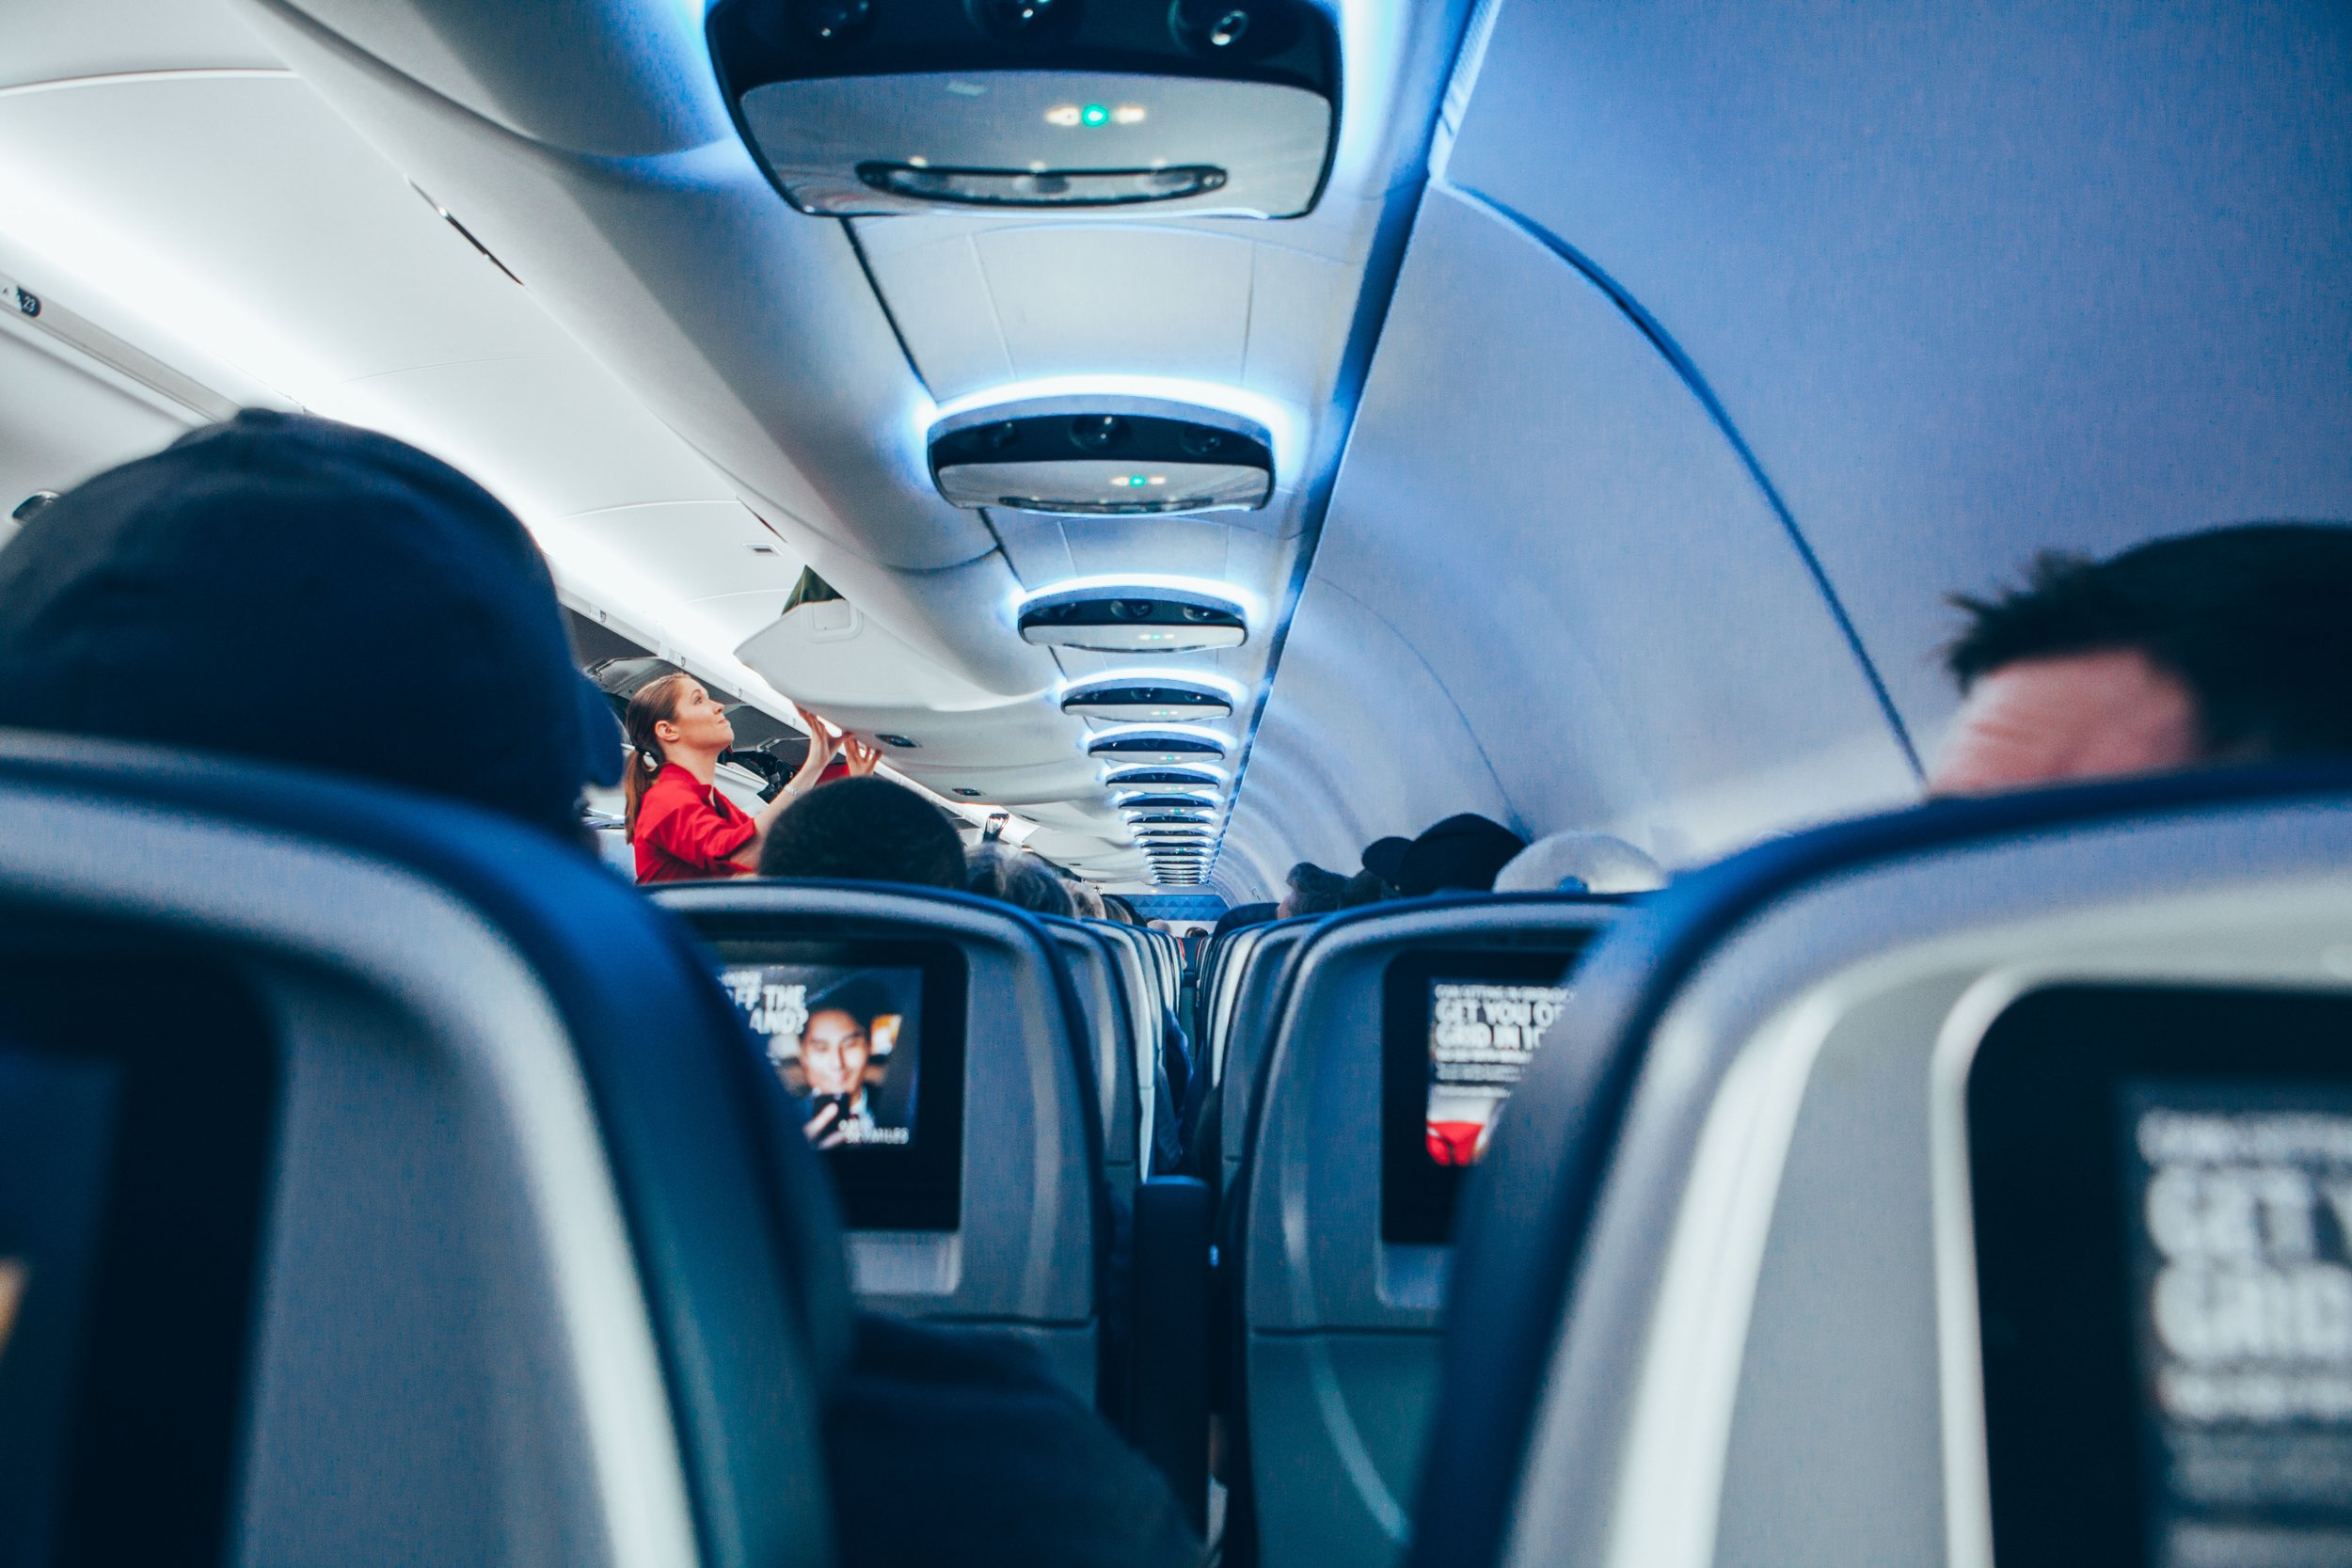 While on your flight it is imperative you walk around and stretch your legs.